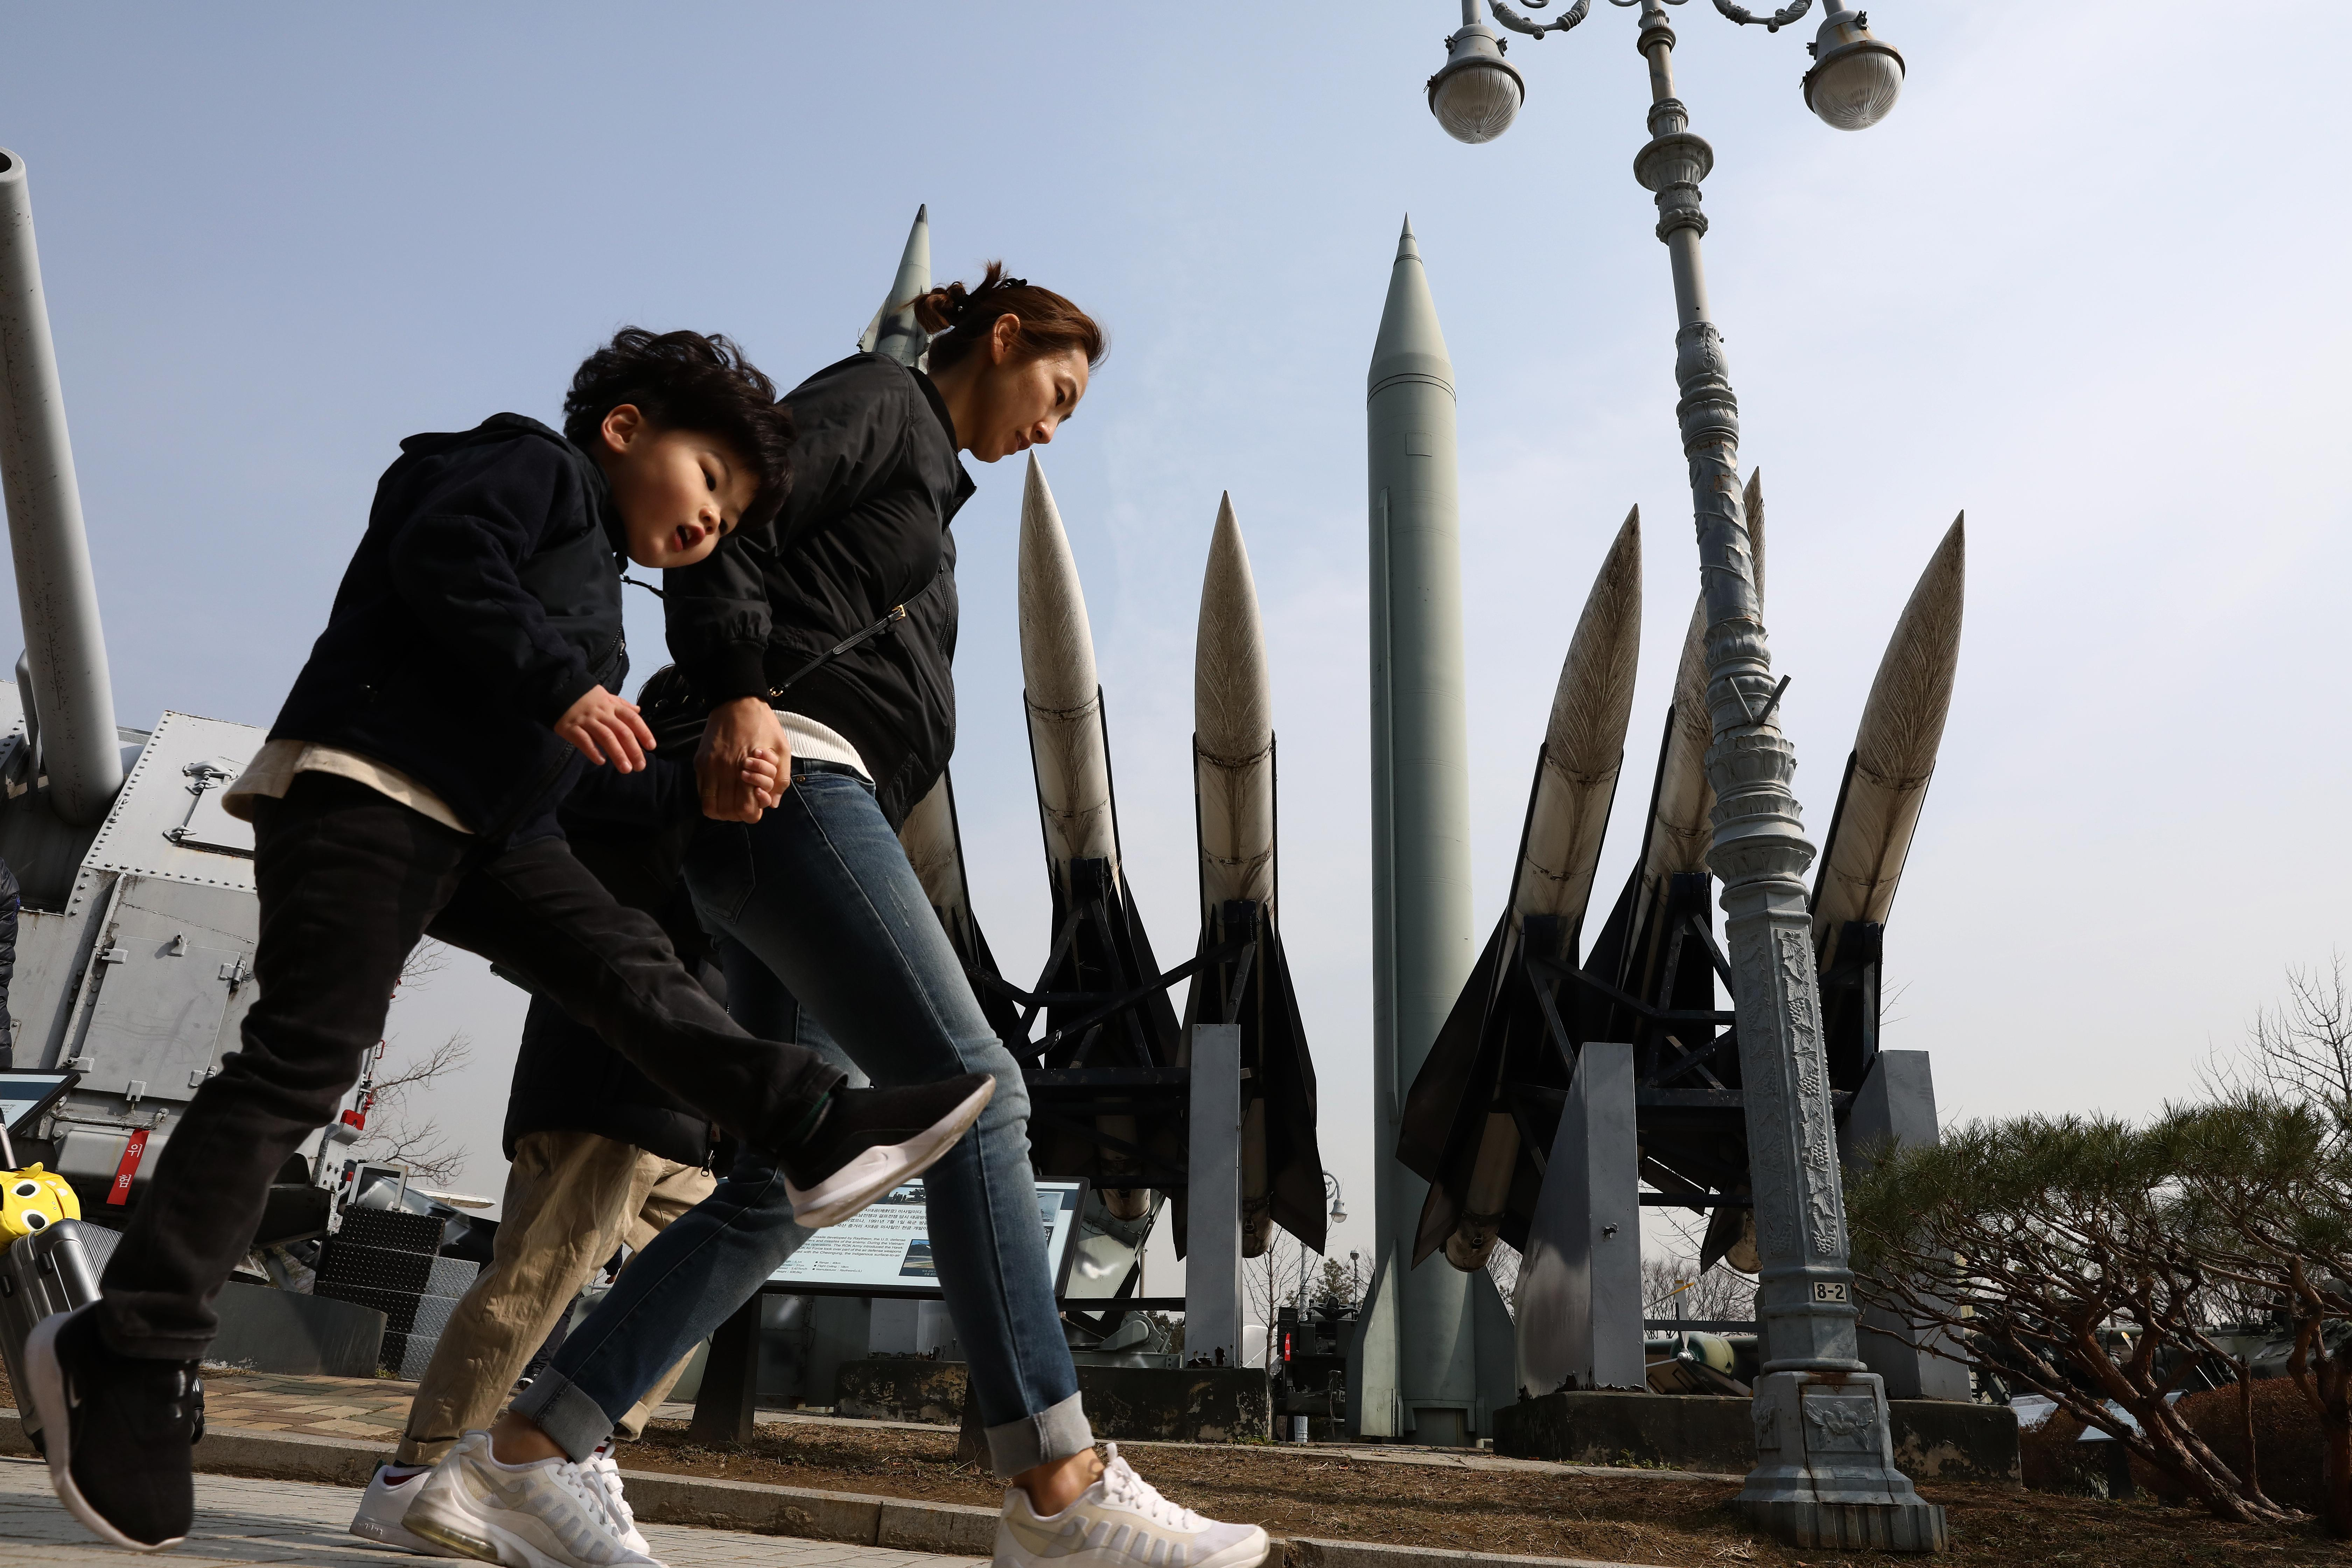 War memorial with missiles